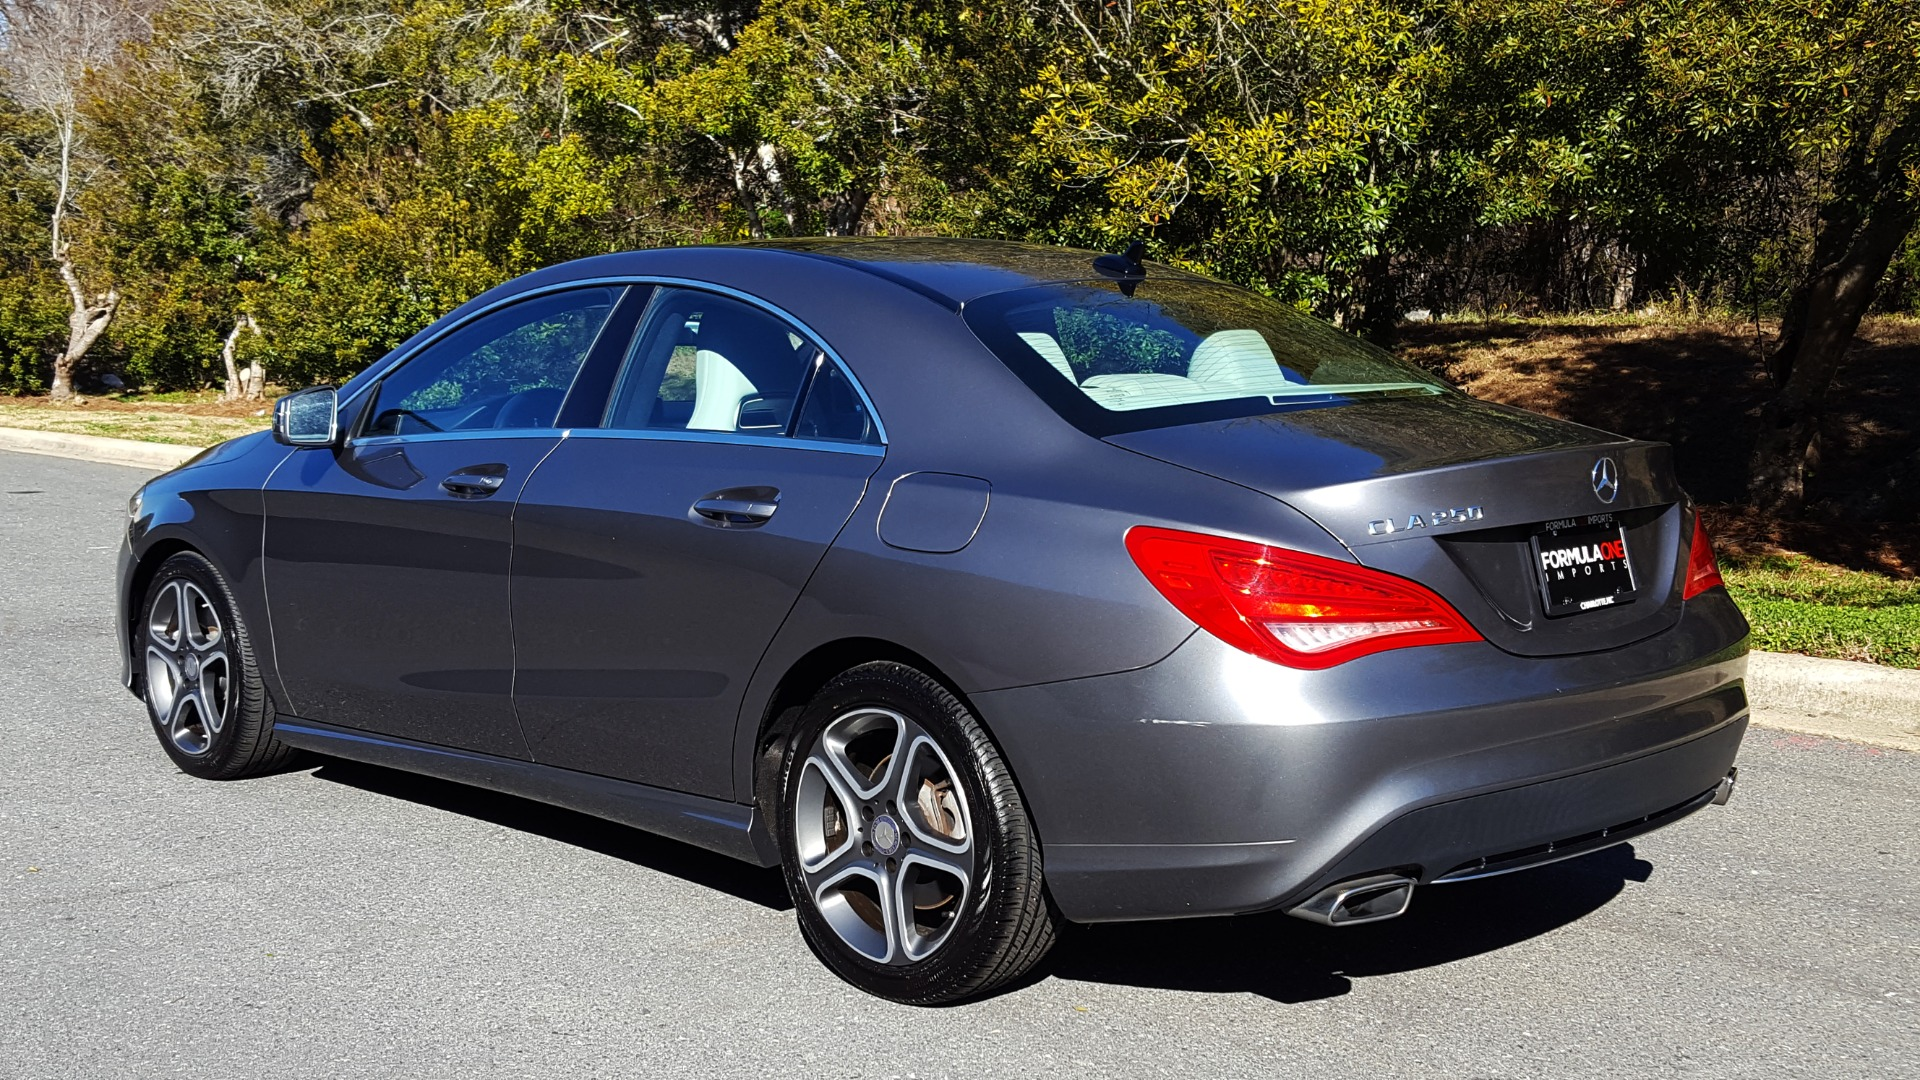 Used 2014 Mercedes-Benz CLA-CLASS CLA 250 / NAV / PANO-ROOF / BLIND SPOT ASSIST / XENON HEADLIGHTS for sale $19,995 at Formula Imports in Charlotte NC 28227 3